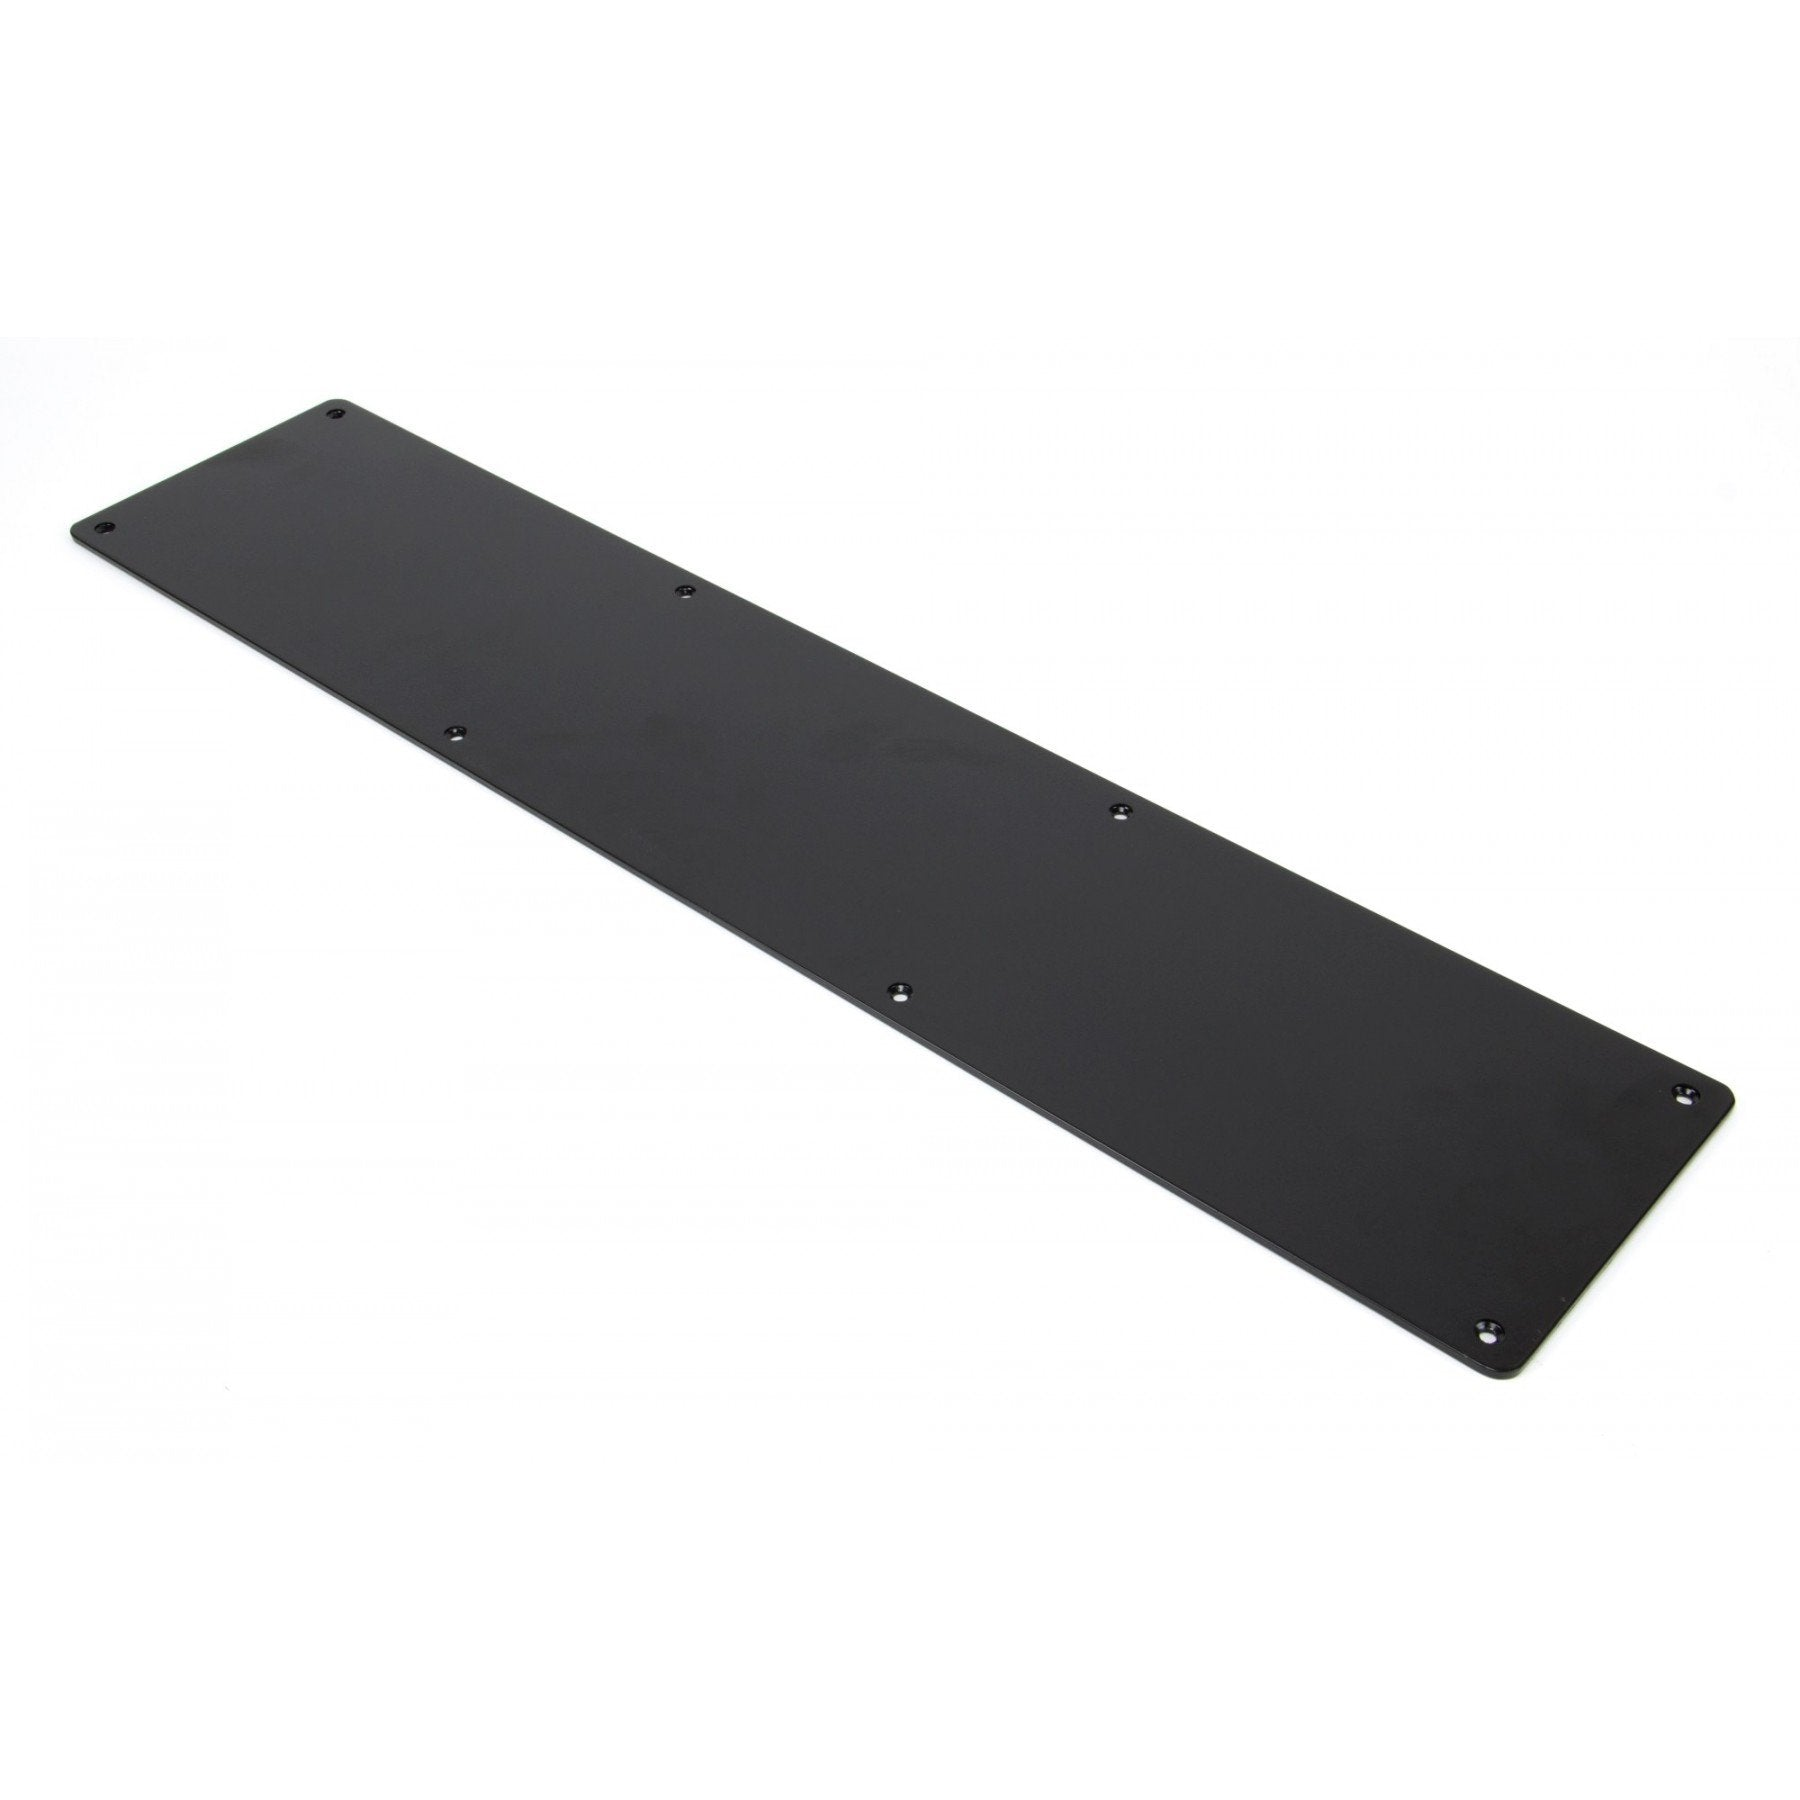 Black Kick Plate - Small